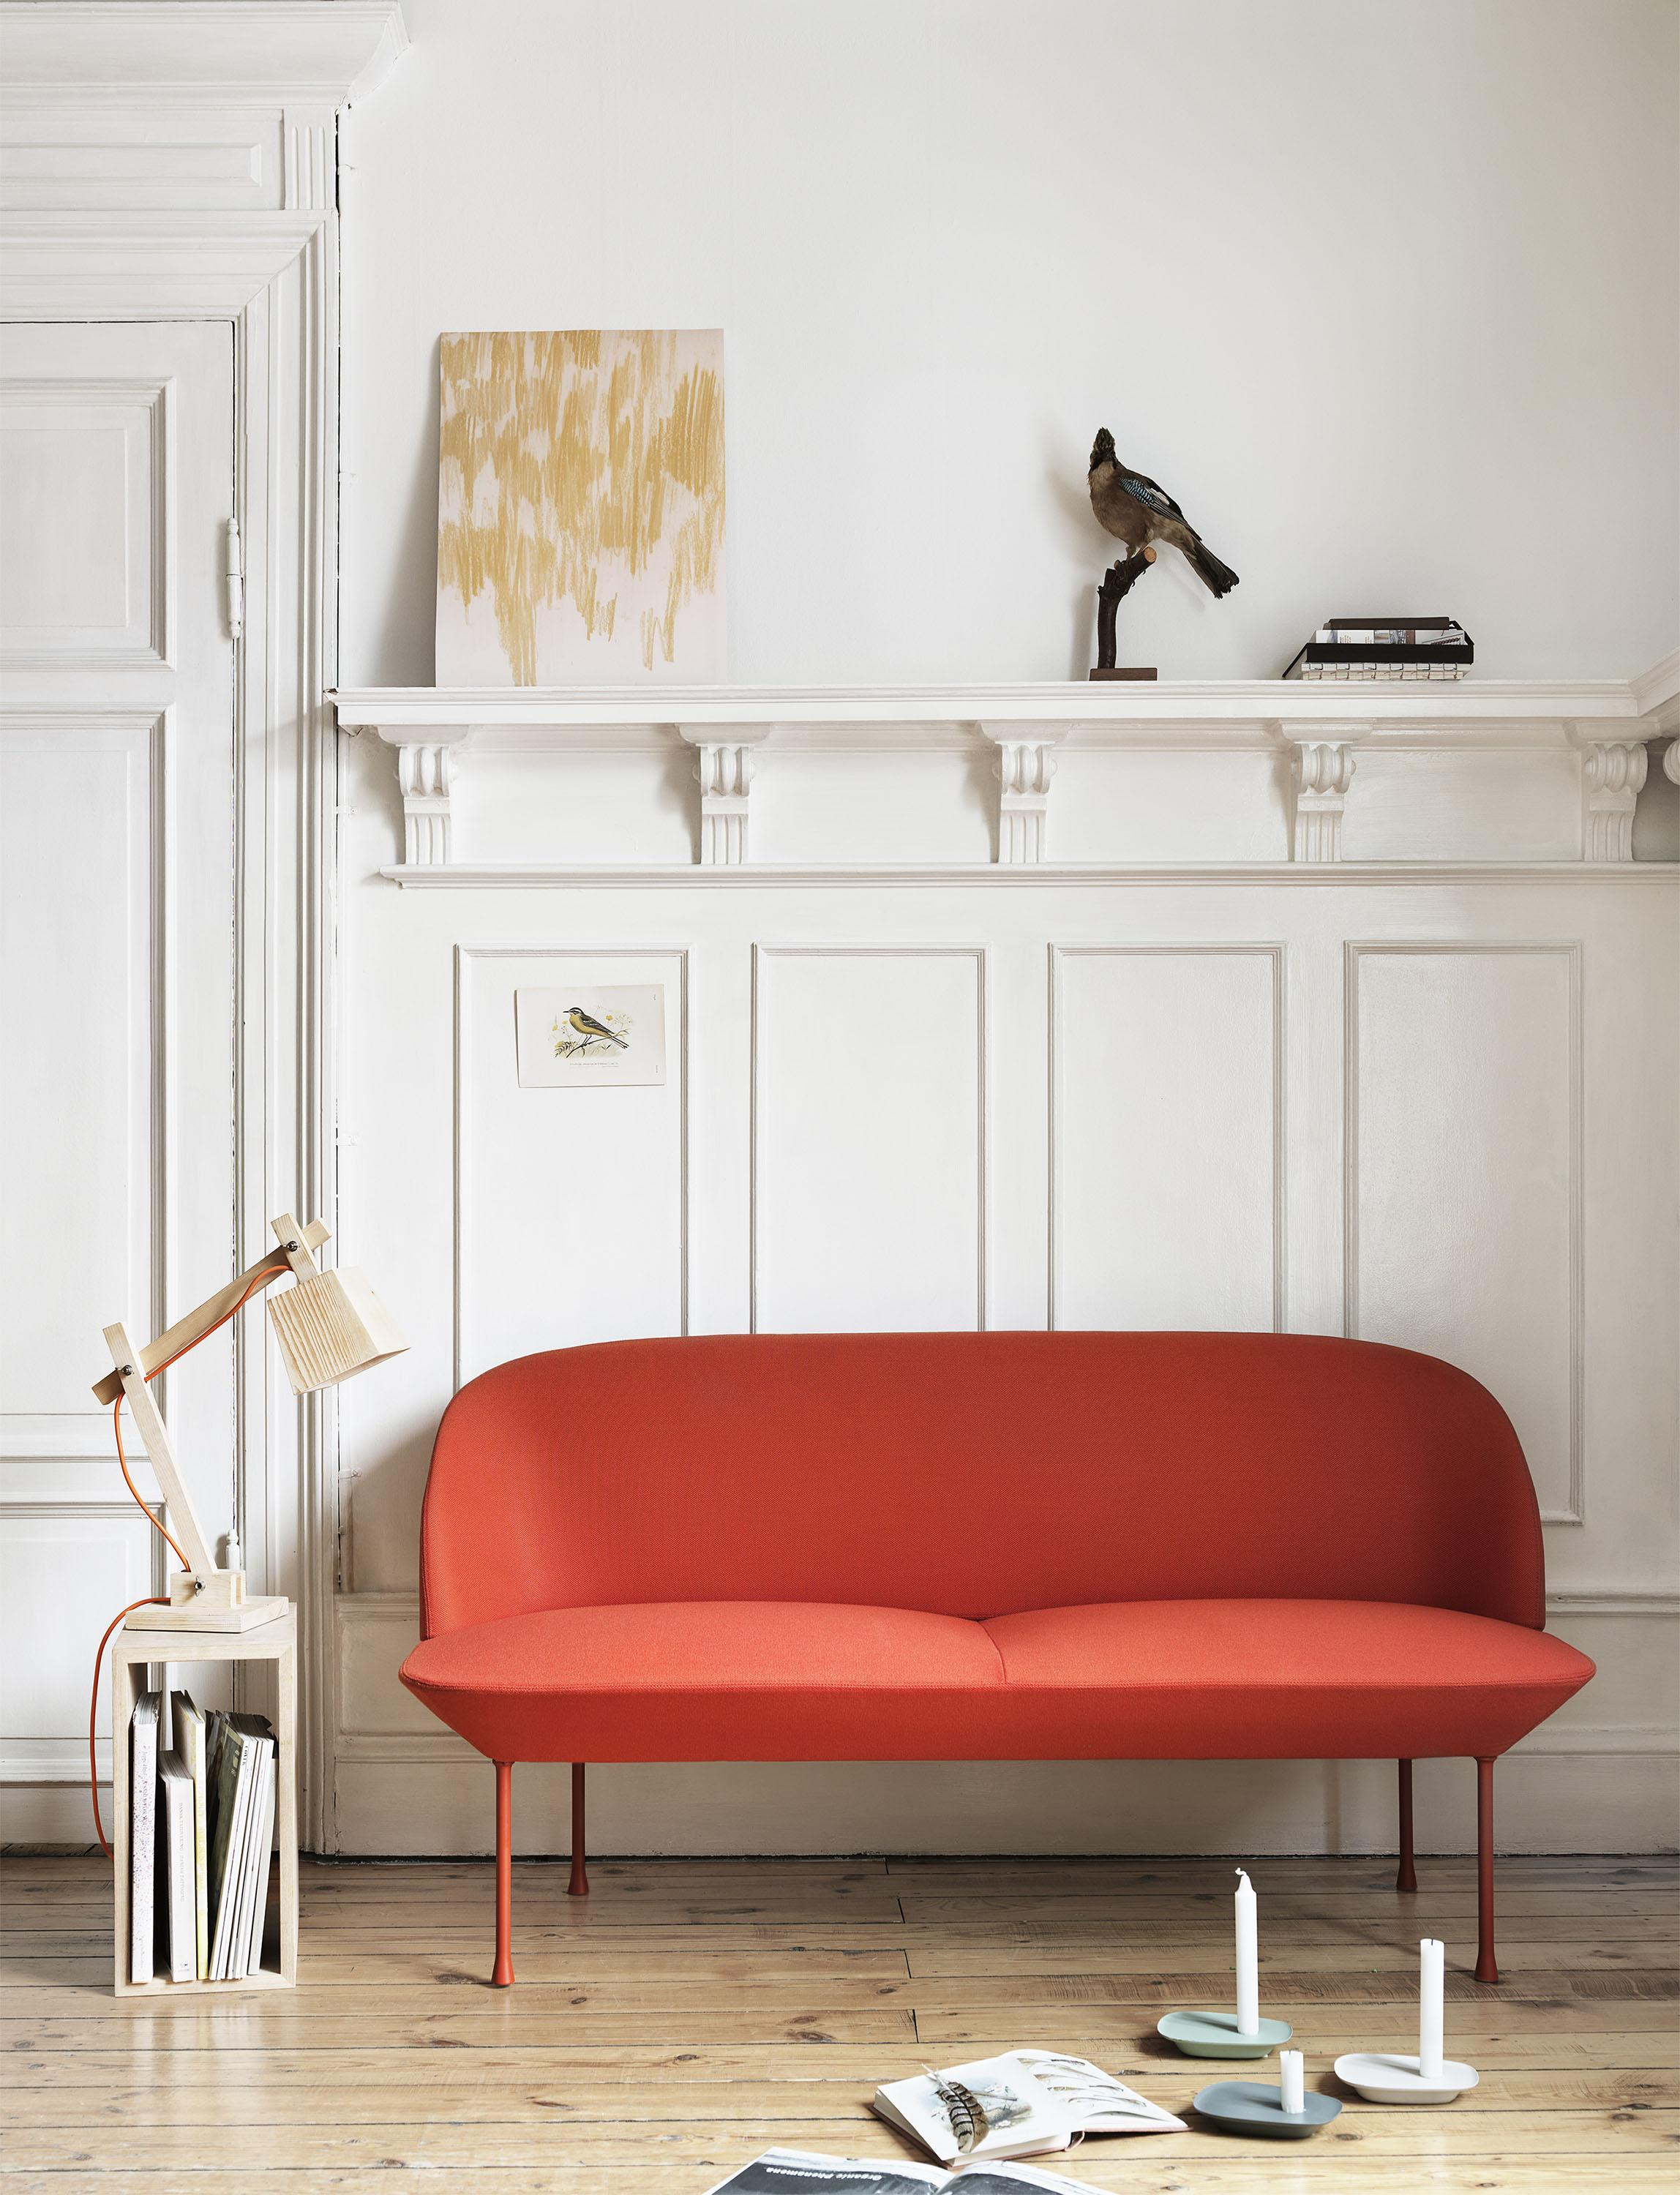 Wohnzimmer Rotes Sofa Rotes Sofa Bilder Ideen Couch